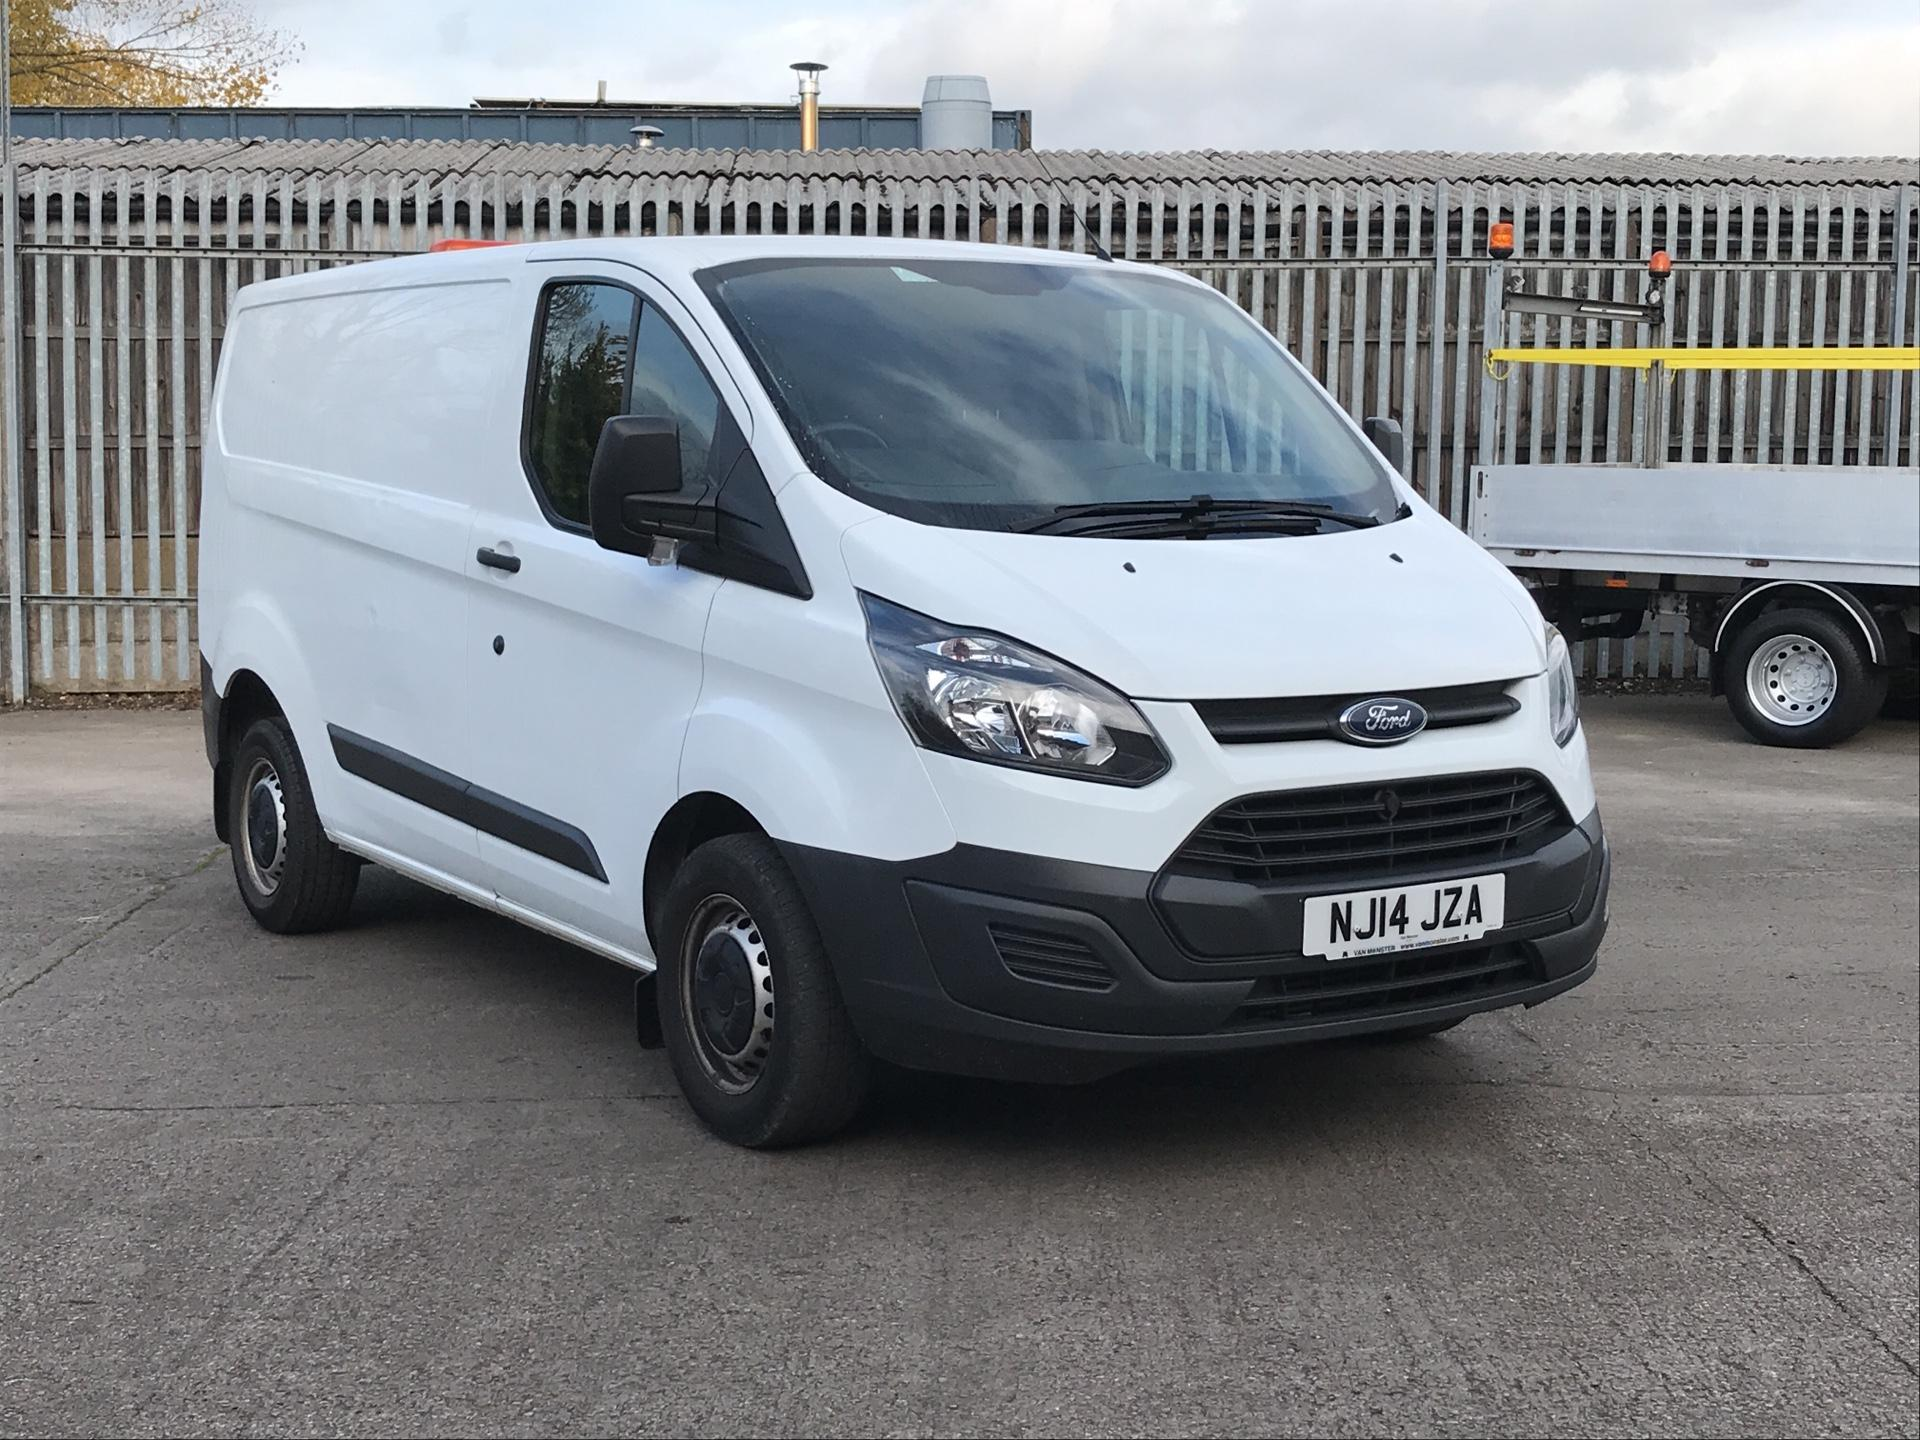 2014 Ford Transit Custom 290 L1 DIESEL FWD 2.2TDCI 100PS LOW ROOF VAN EURO 5 *VALUE RANGE VEHICLE - CONDITION REFLECTED IN PRICE* (NJ14JZA)